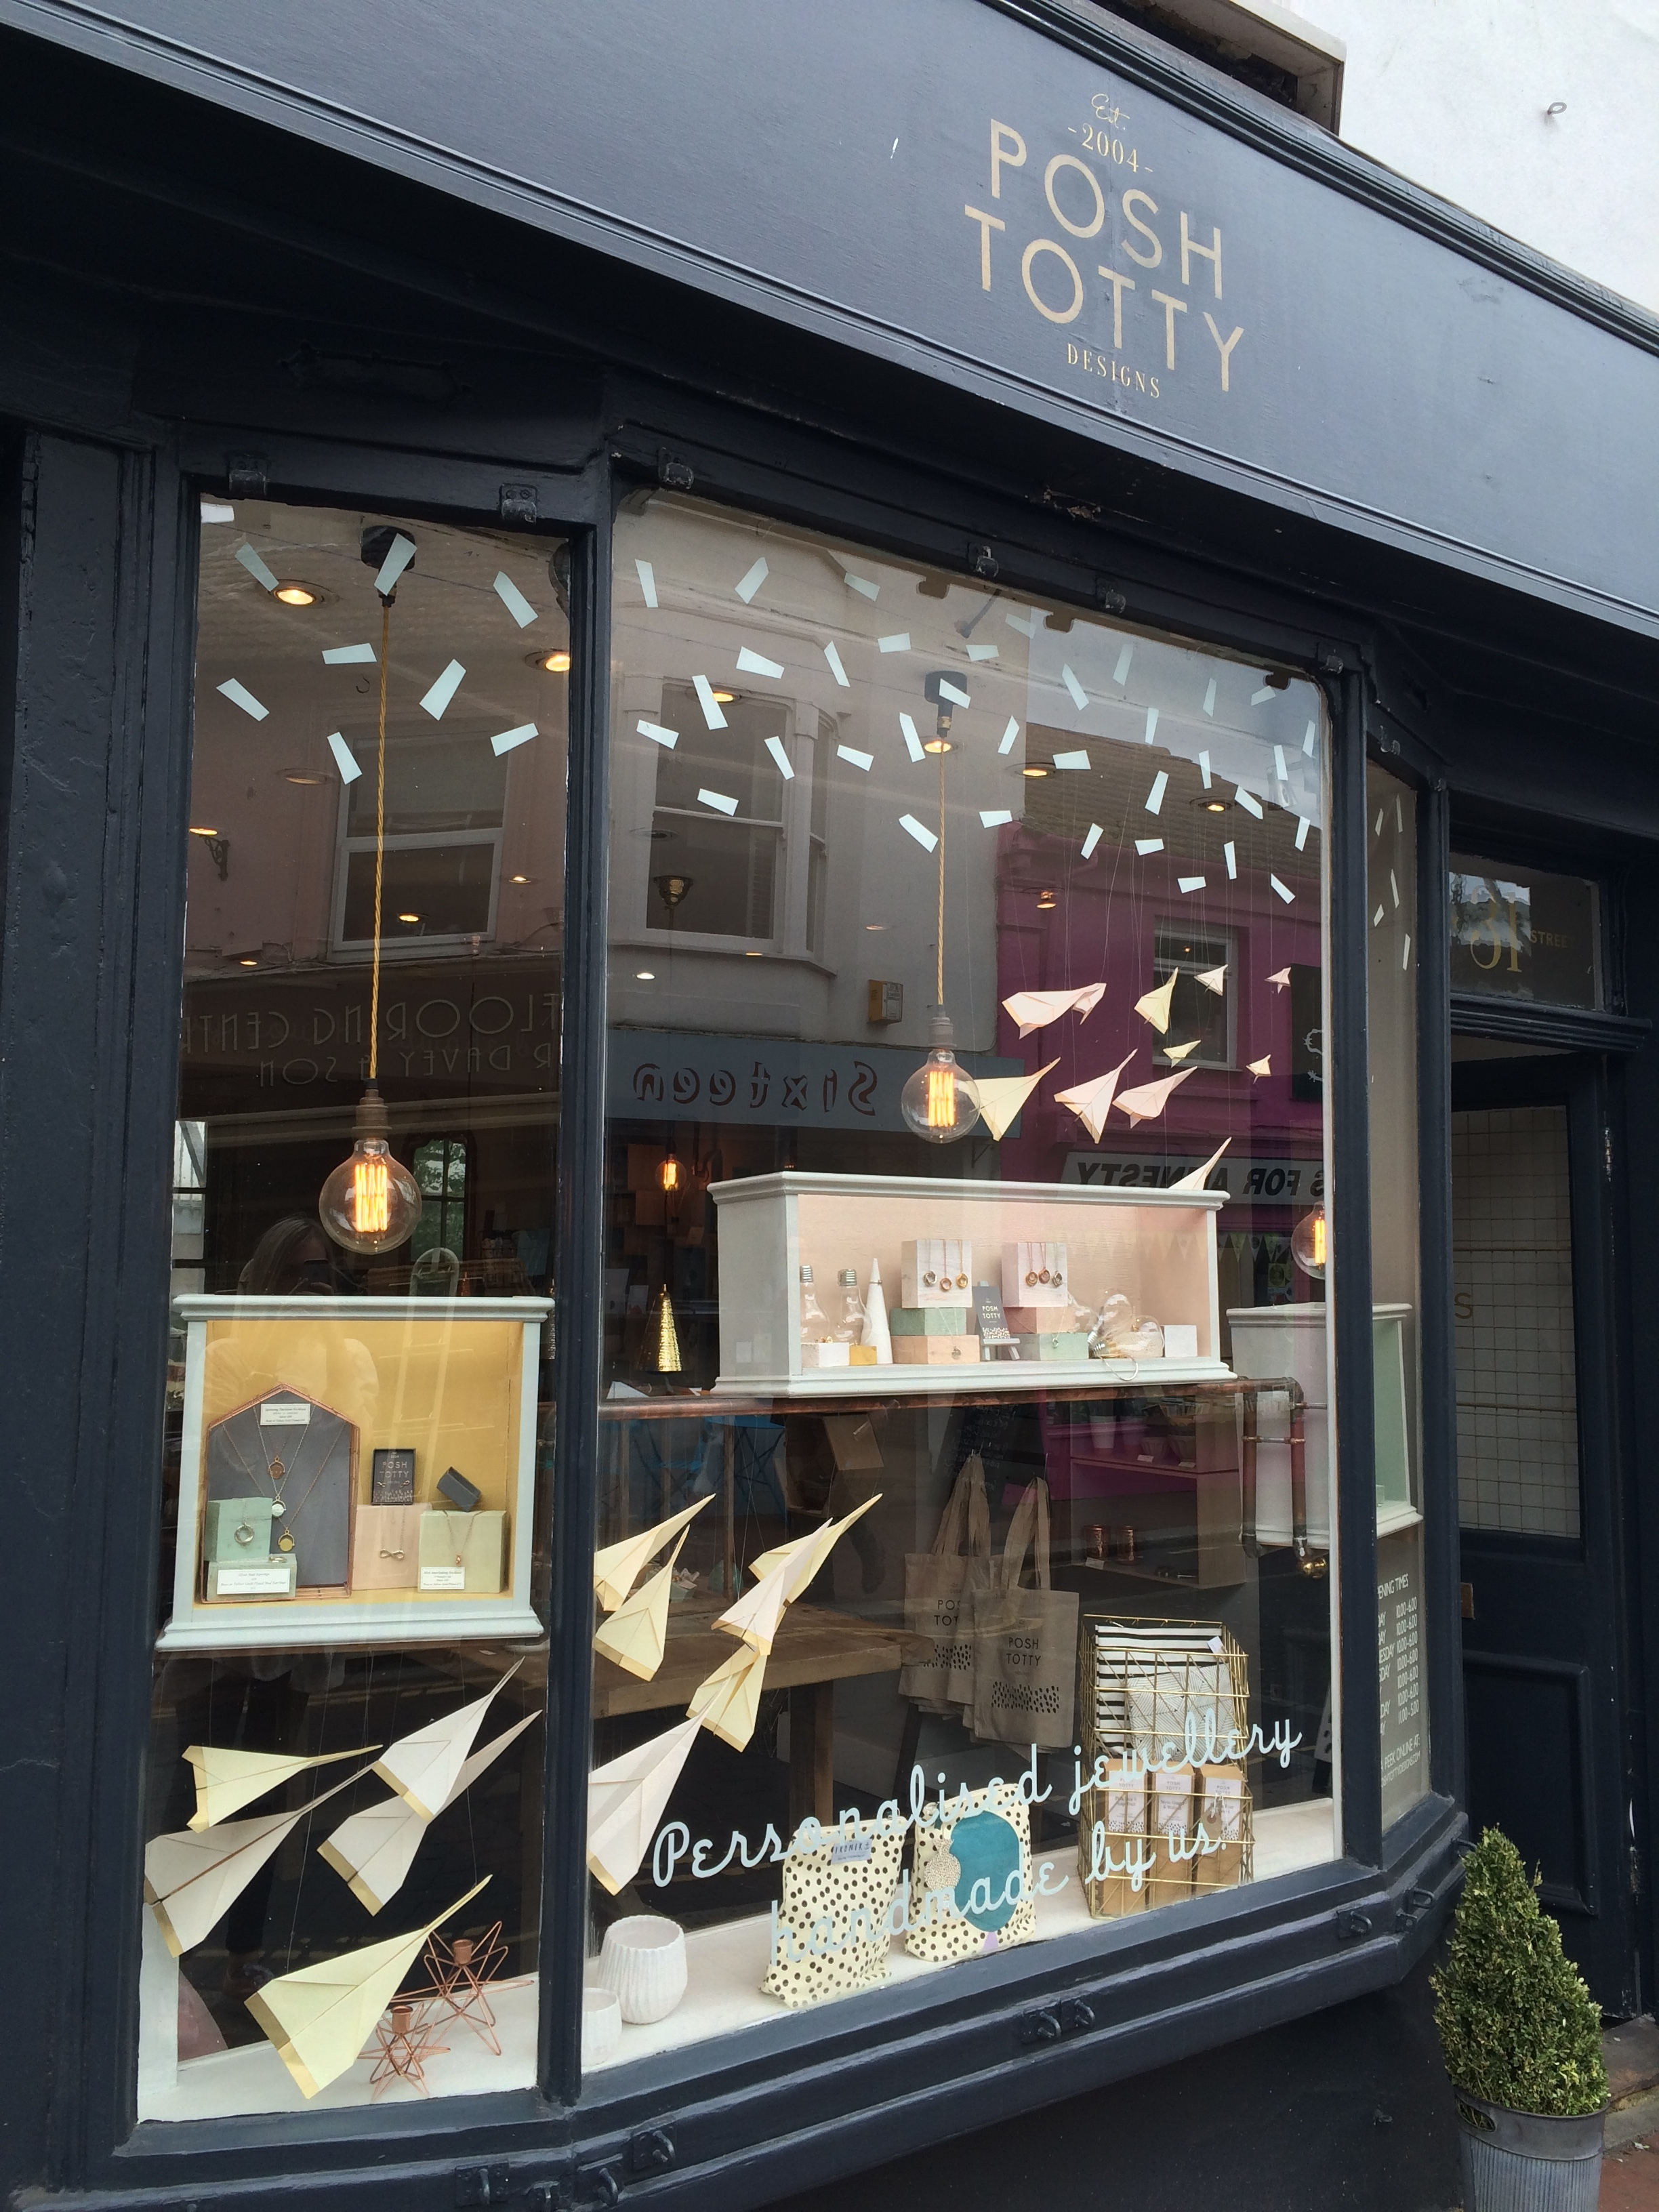 Posh Totty Designs Flagship Store Window Display